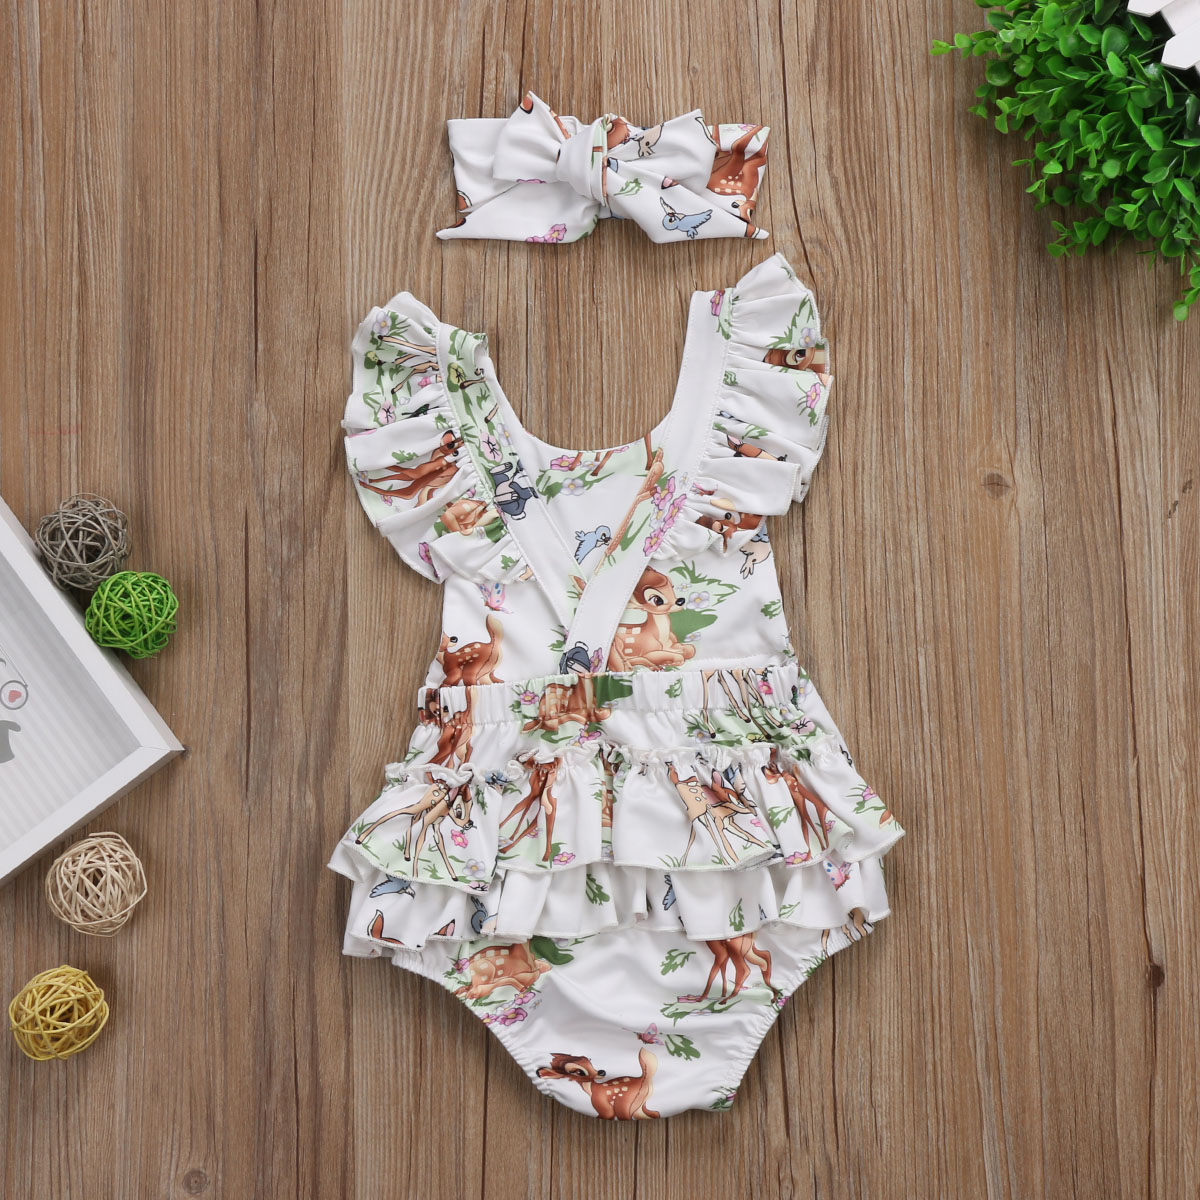 Bambi Cartoon Newborn Romper Baby Girl Clothes With Headband For New Born Clothing Set Girls Rompers For Baby Girl Outfit Onesie in Rompers from Mother Kids